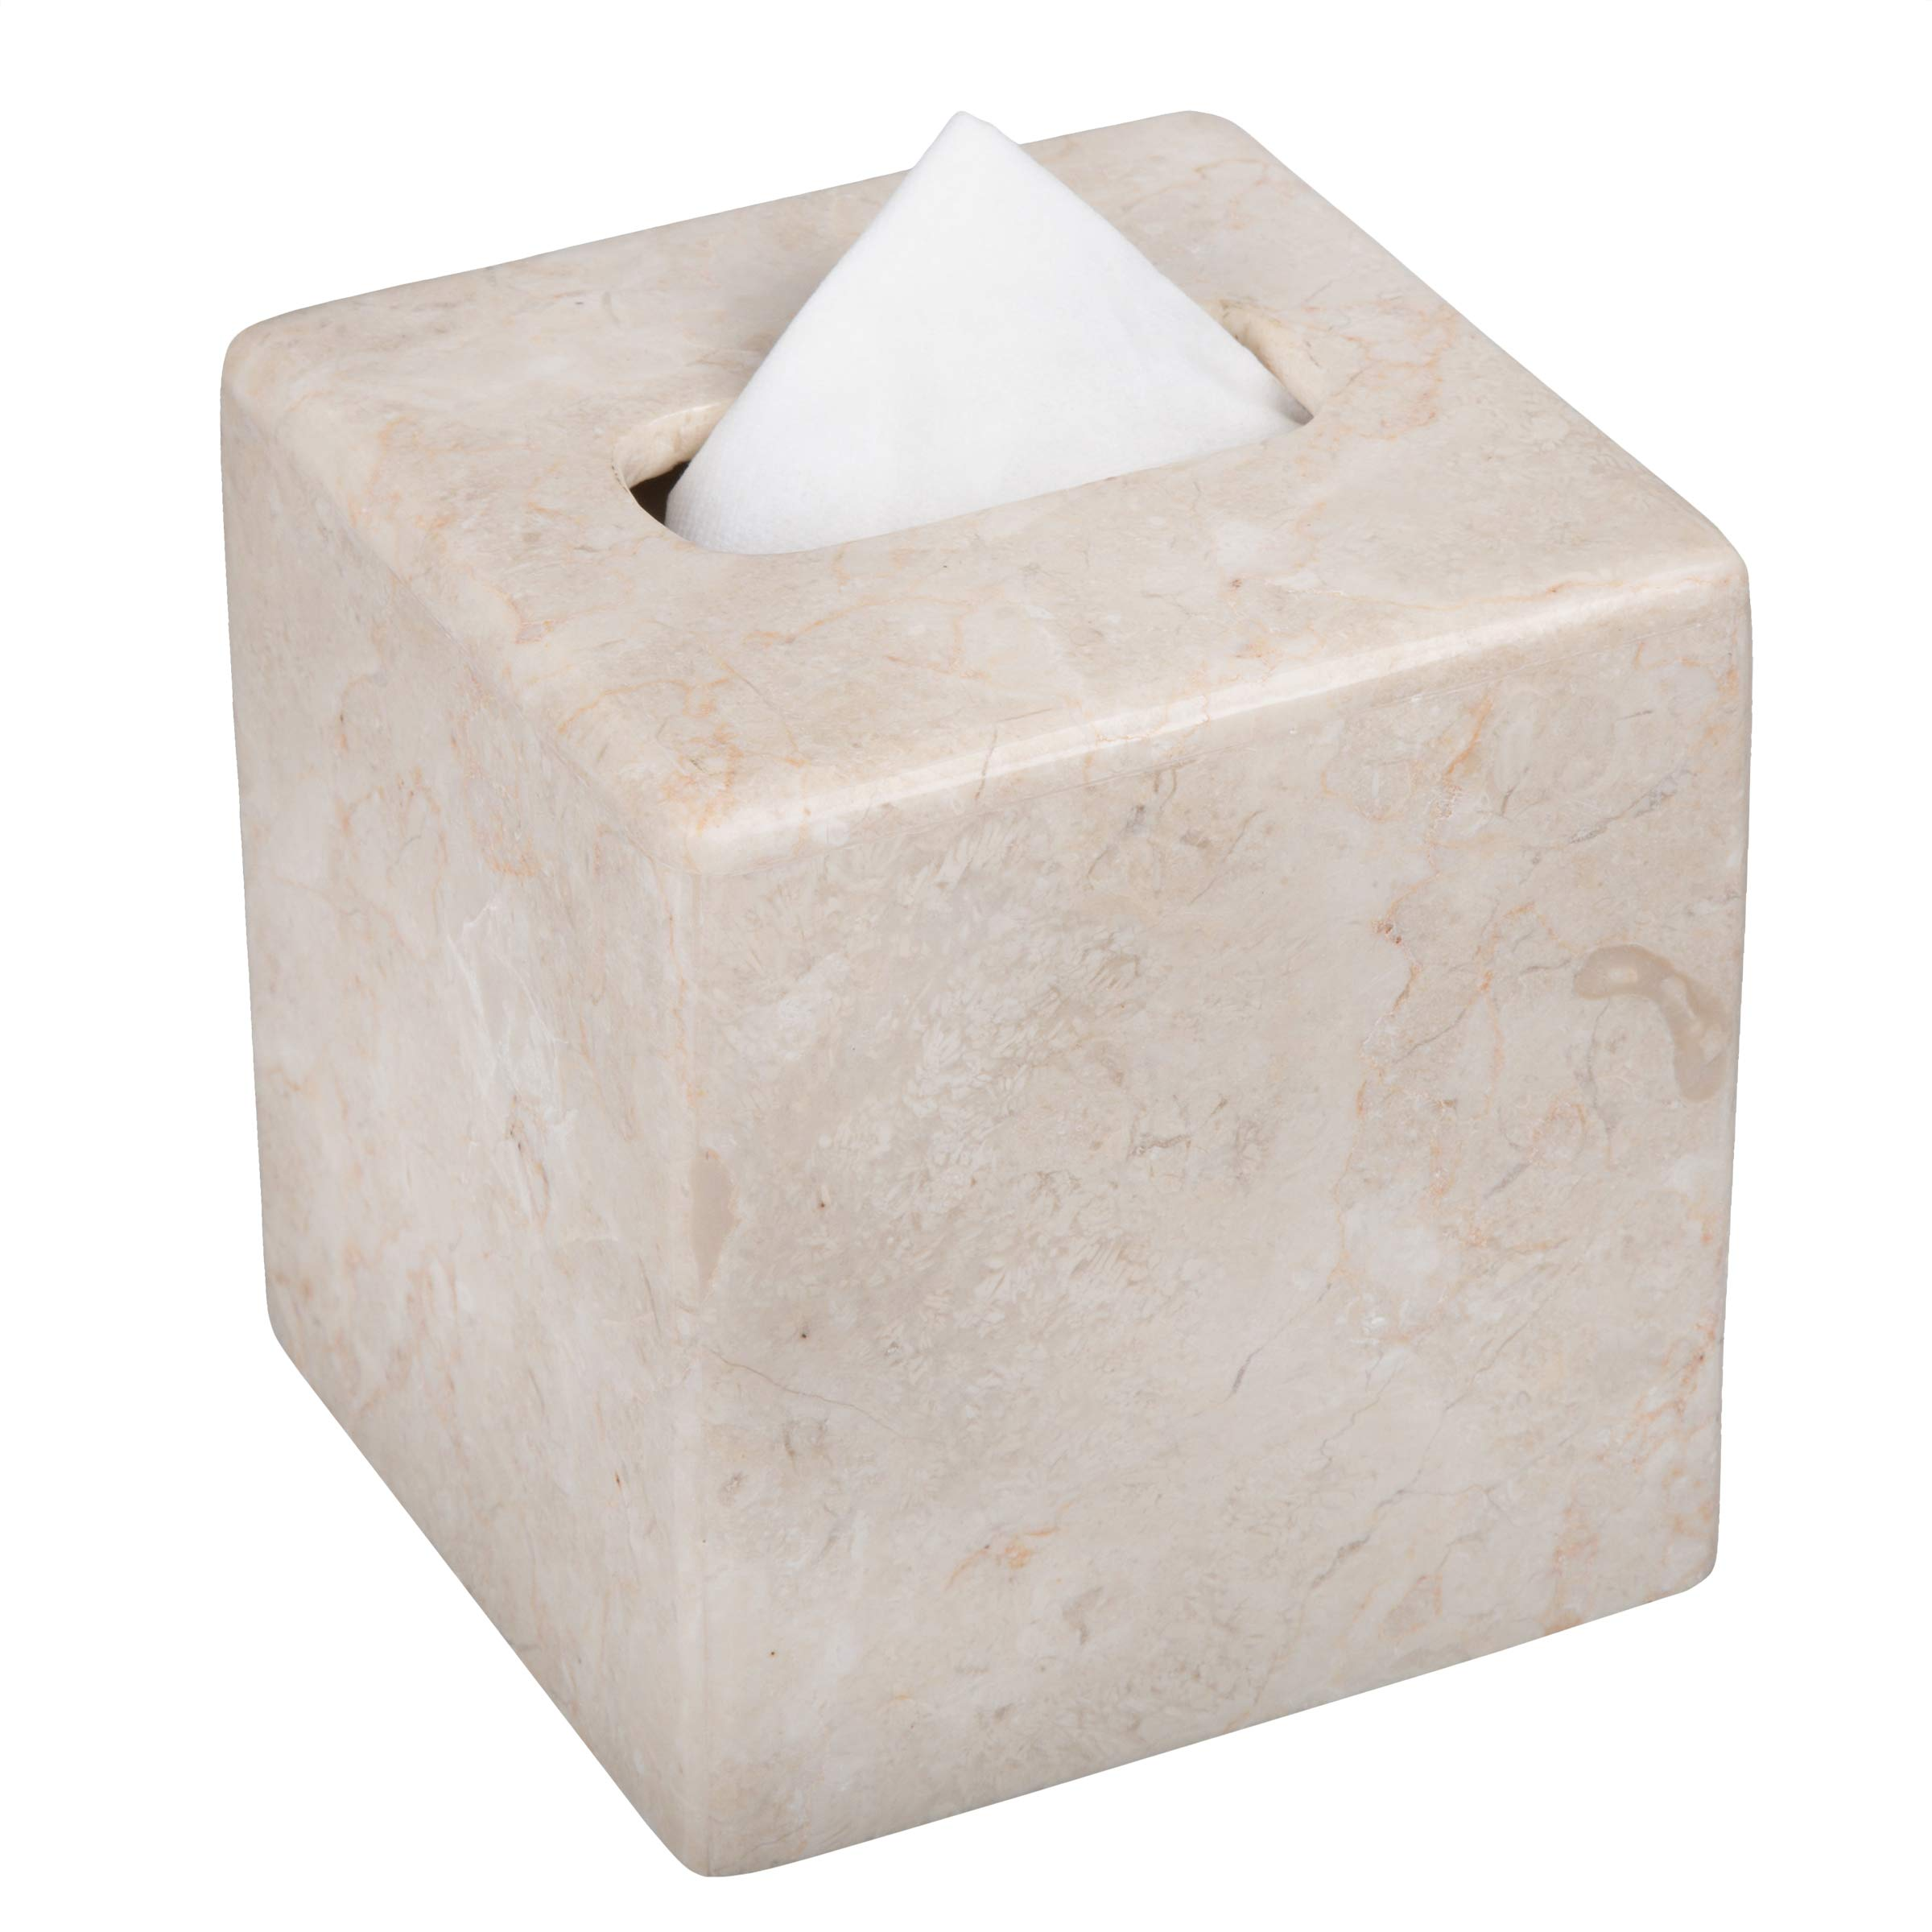 Creative Home Natural Champagne Marble Stone Tissue Box Cover, Holder, 5-1/8'' x 5/18'' x 5-1/2'' H by Creative Home